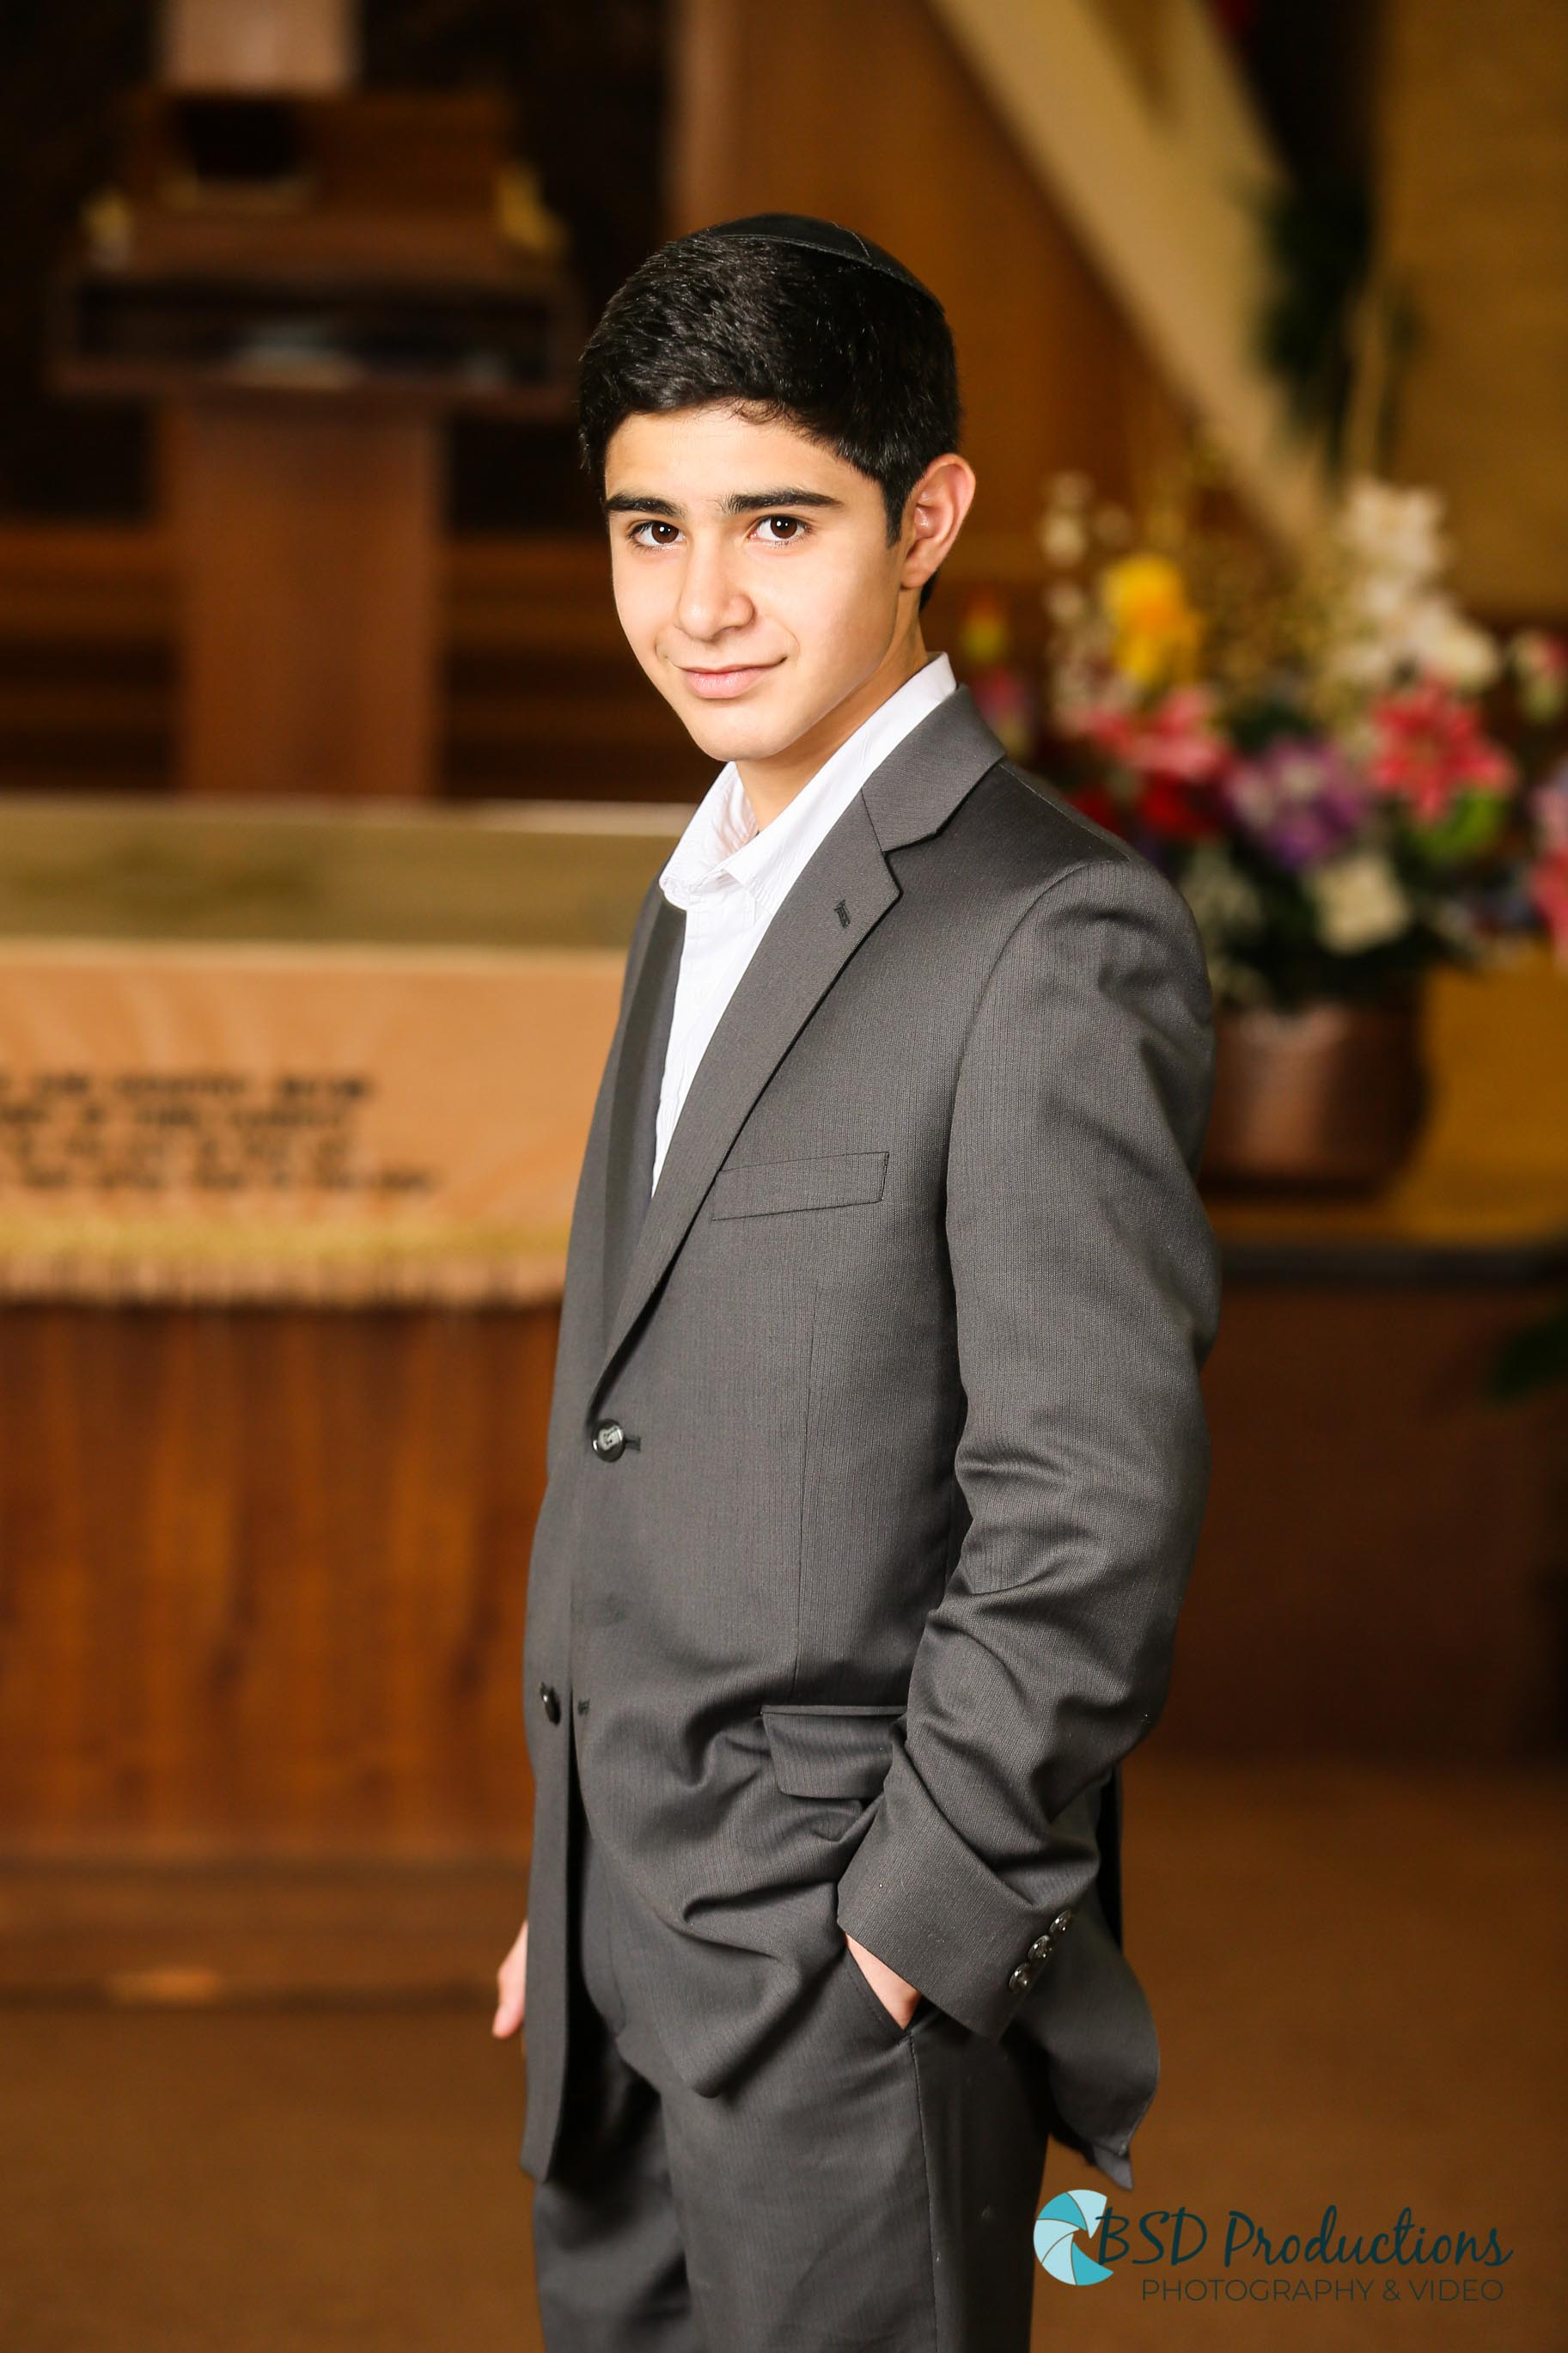 DAV_7657 Bar Mitzvah – BSD Prodcutions